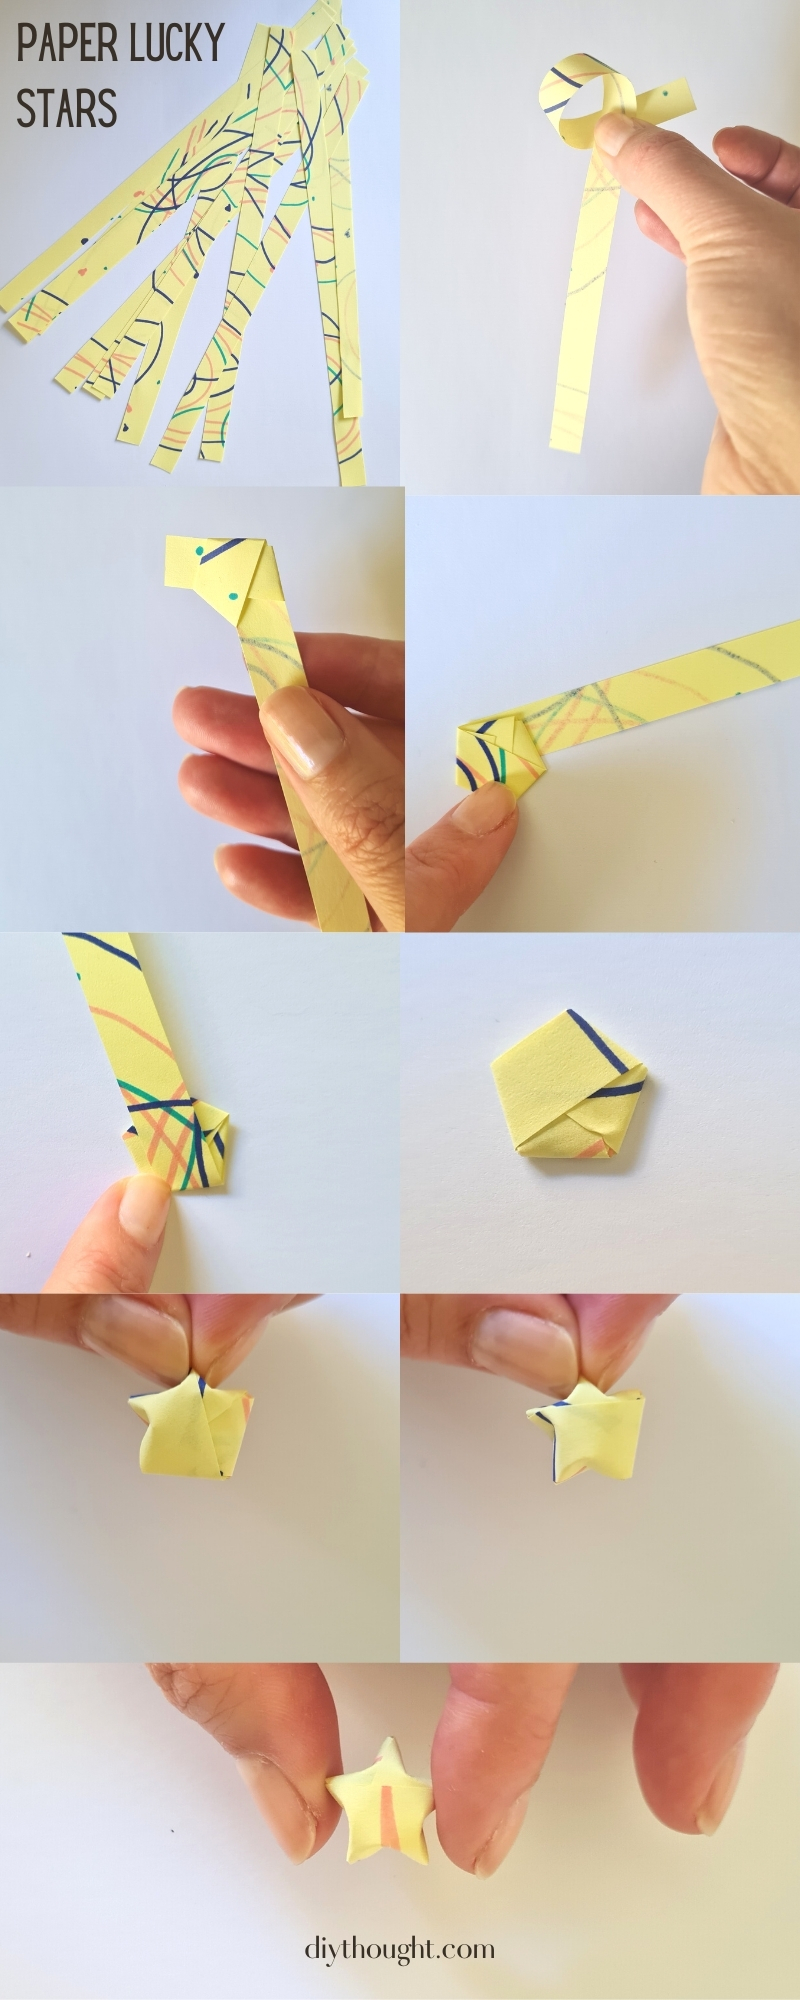 paper strip lucky stars. How to fold